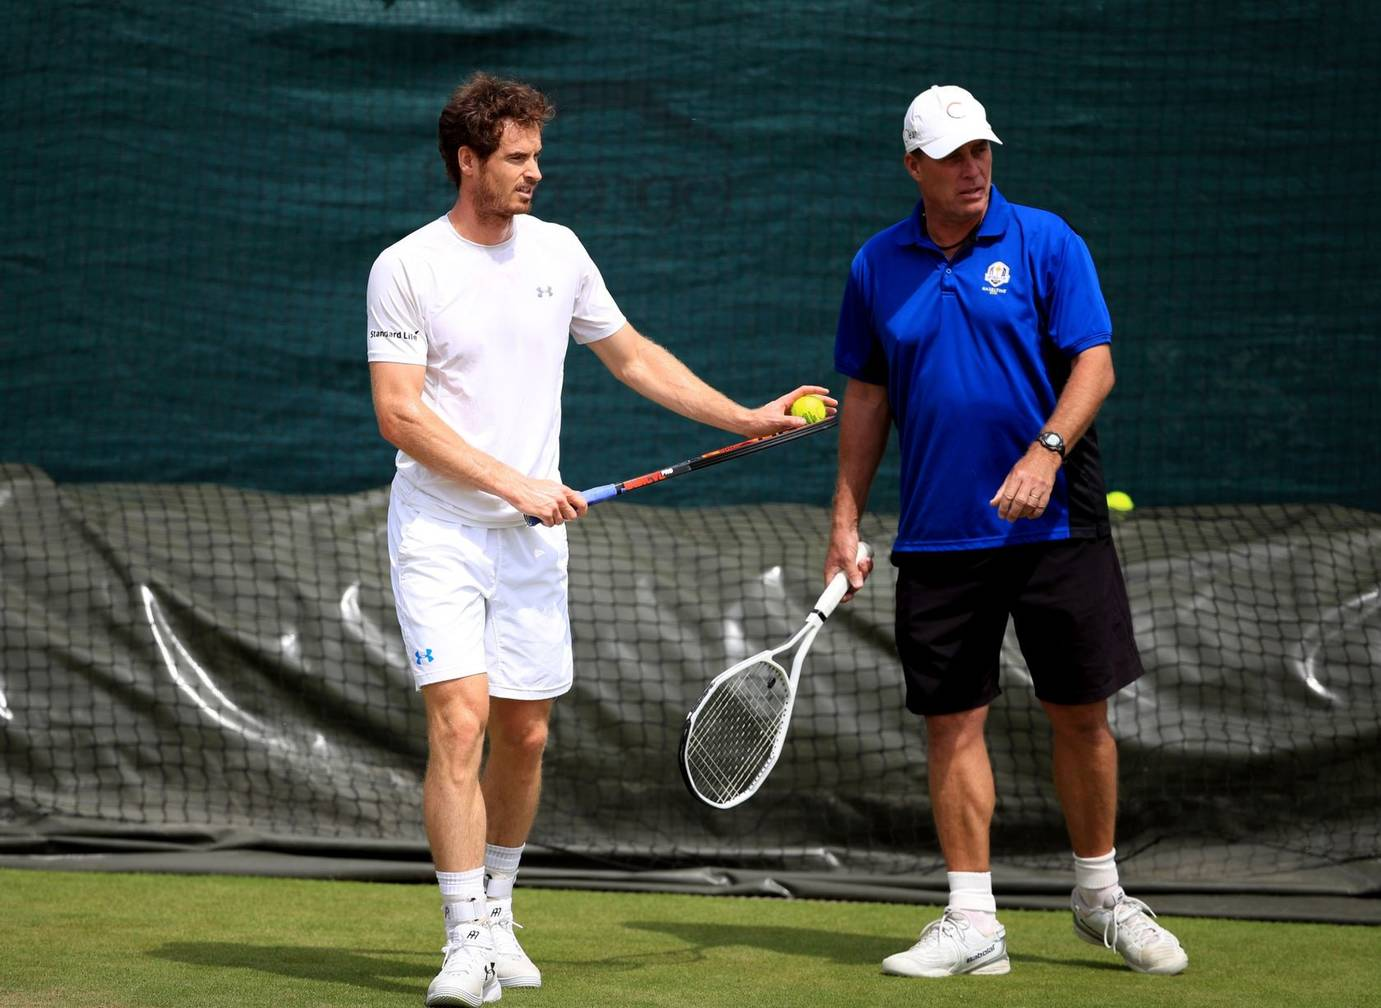 Andy and Ivan Lendl call time on Coaching Partnership – News